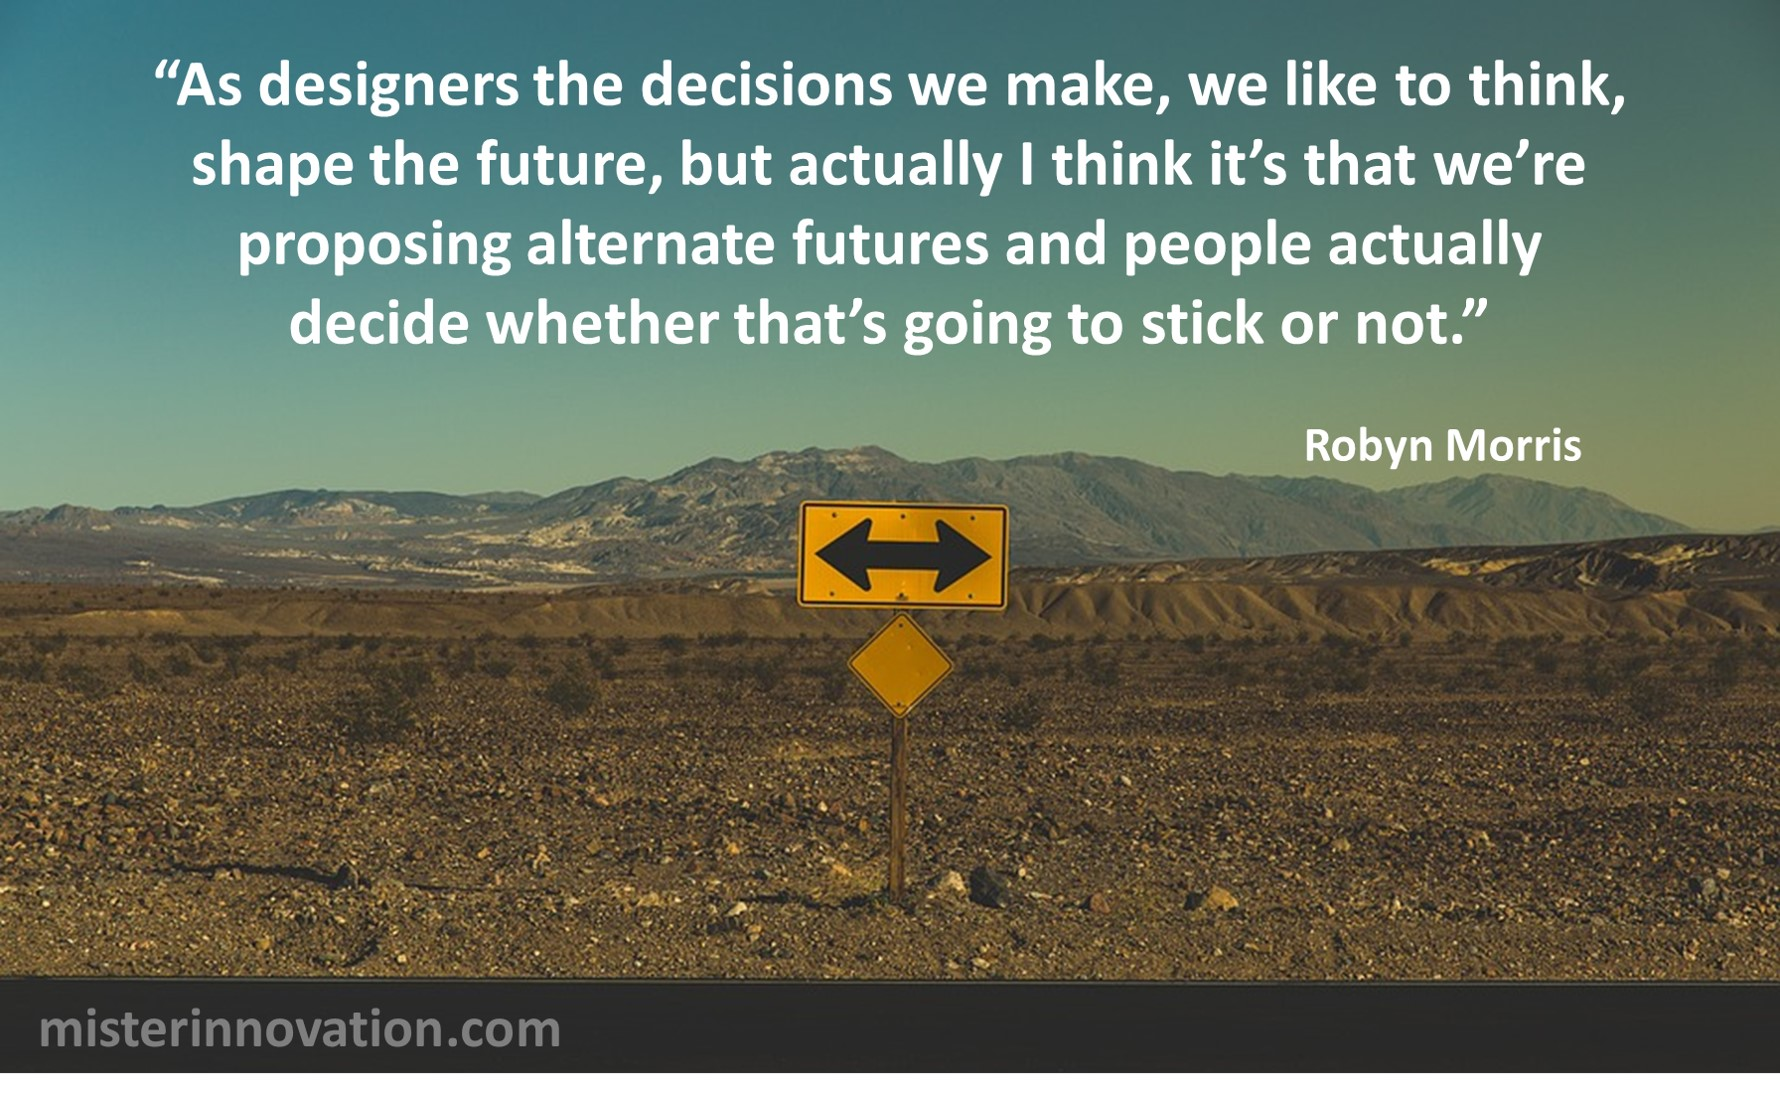 Robyn Morris Quote on Designers Proposing Alternate Futures